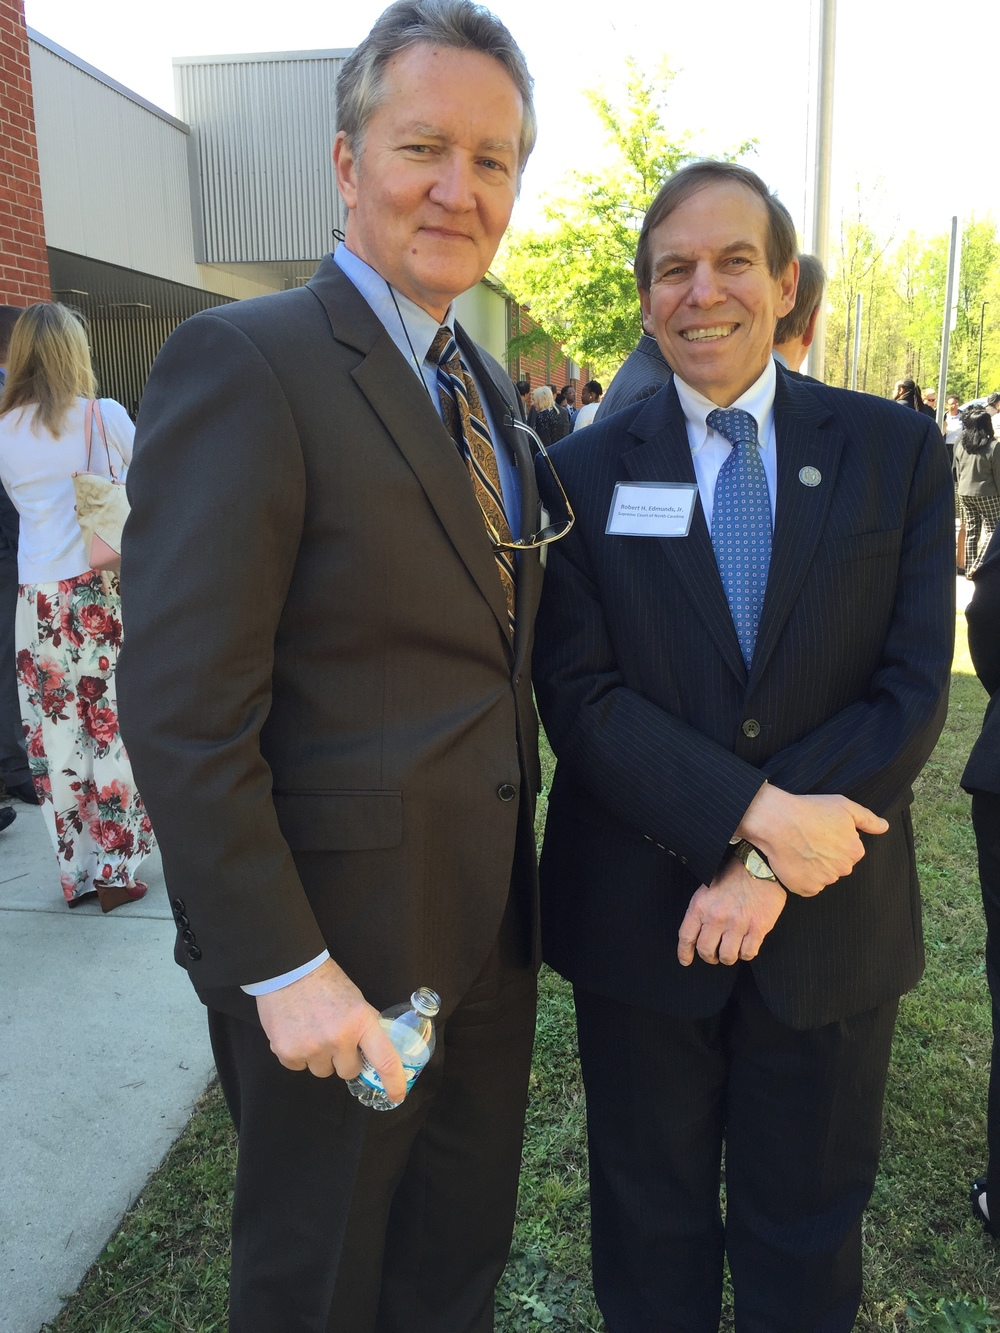 With Secretary of Public Safety Frank Perry at opening of renovated Edgecombe Youth Development Center, Rocky Mount, April 14, 2016.